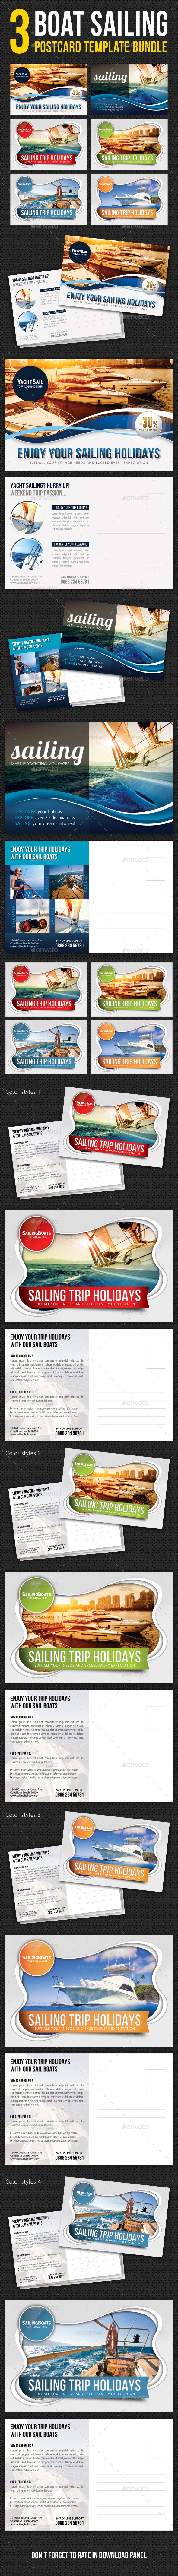 GraphicRiver 3 in 1 Boat Sailing Postcard Template Bundle 10511252